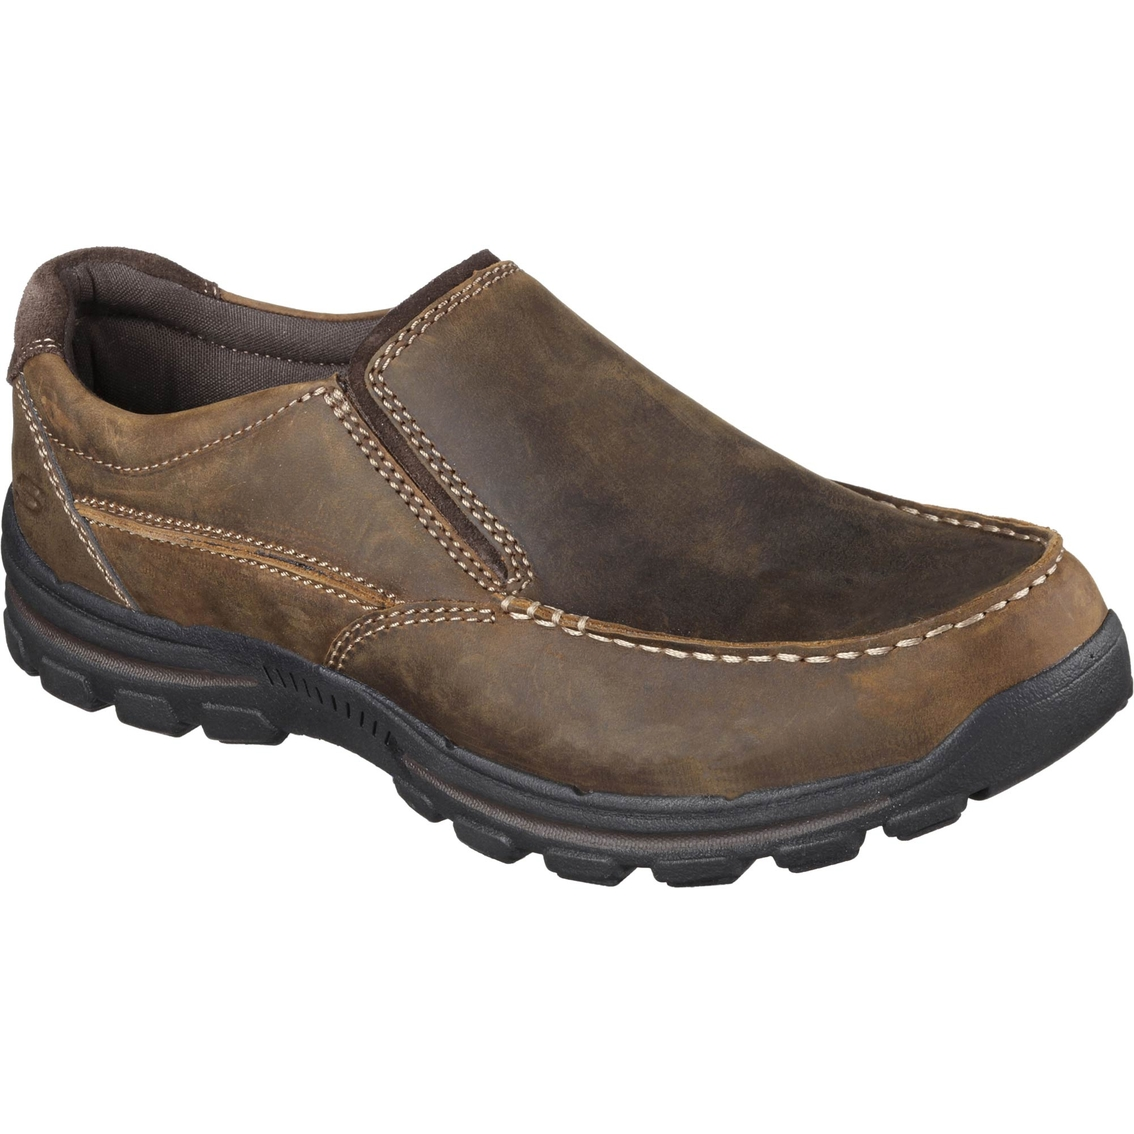 Skechers Braver Rayland Casual Slip On Shoes